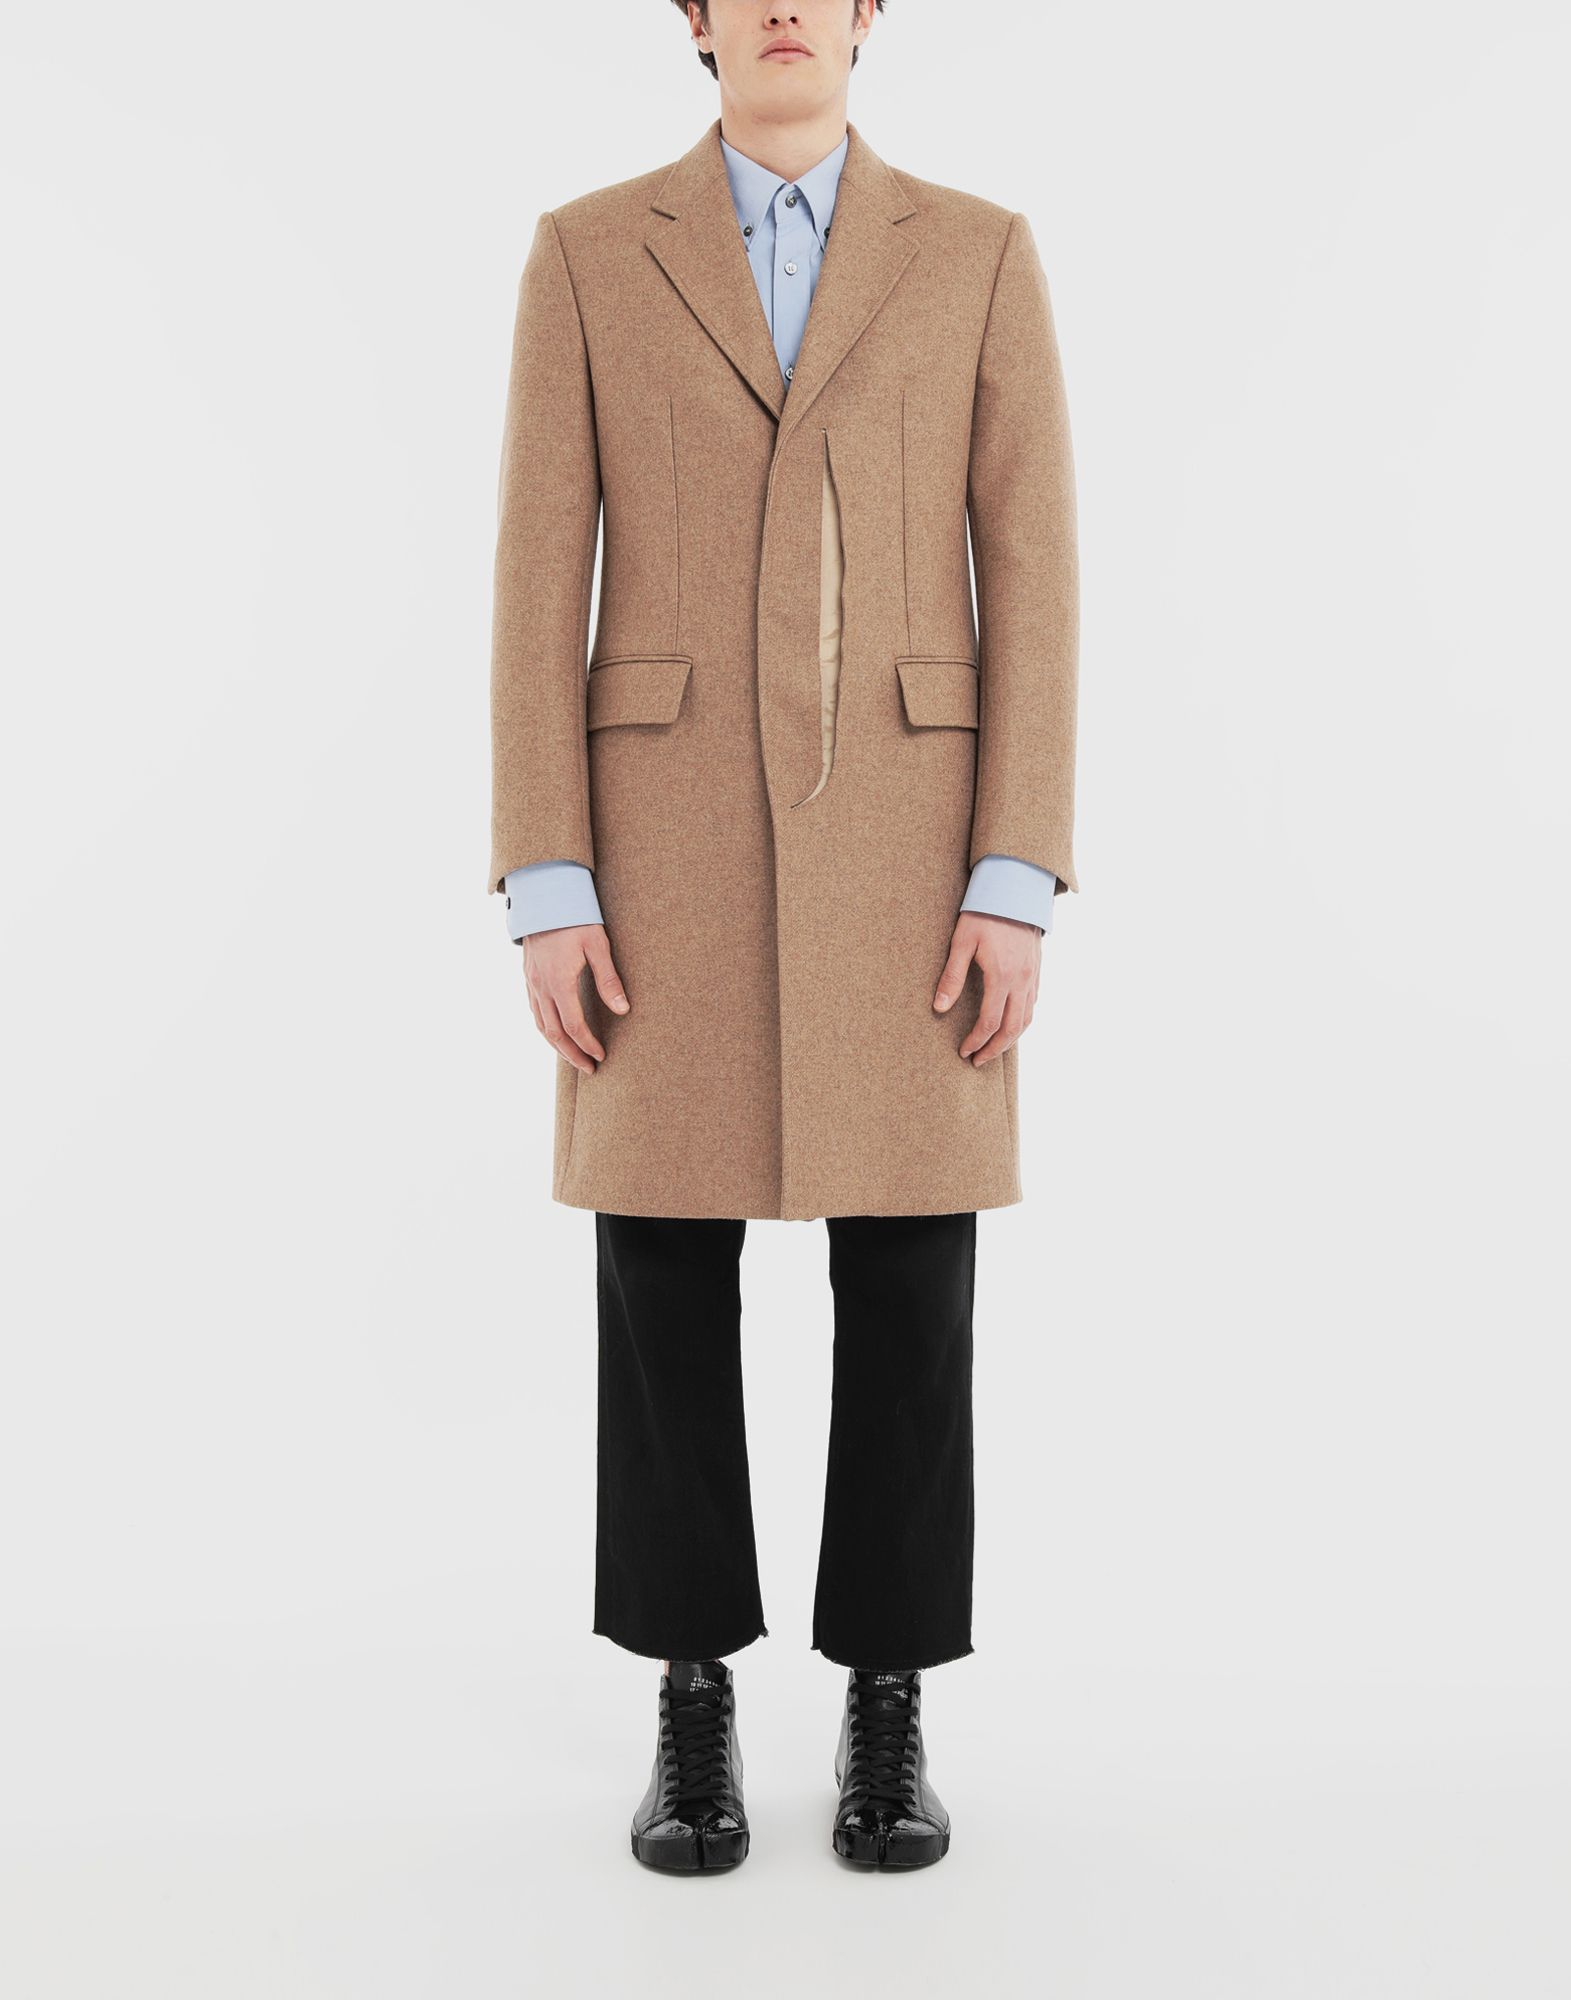 MAISON MARGIELA Décortiqué coat Coats and Trenches Man r